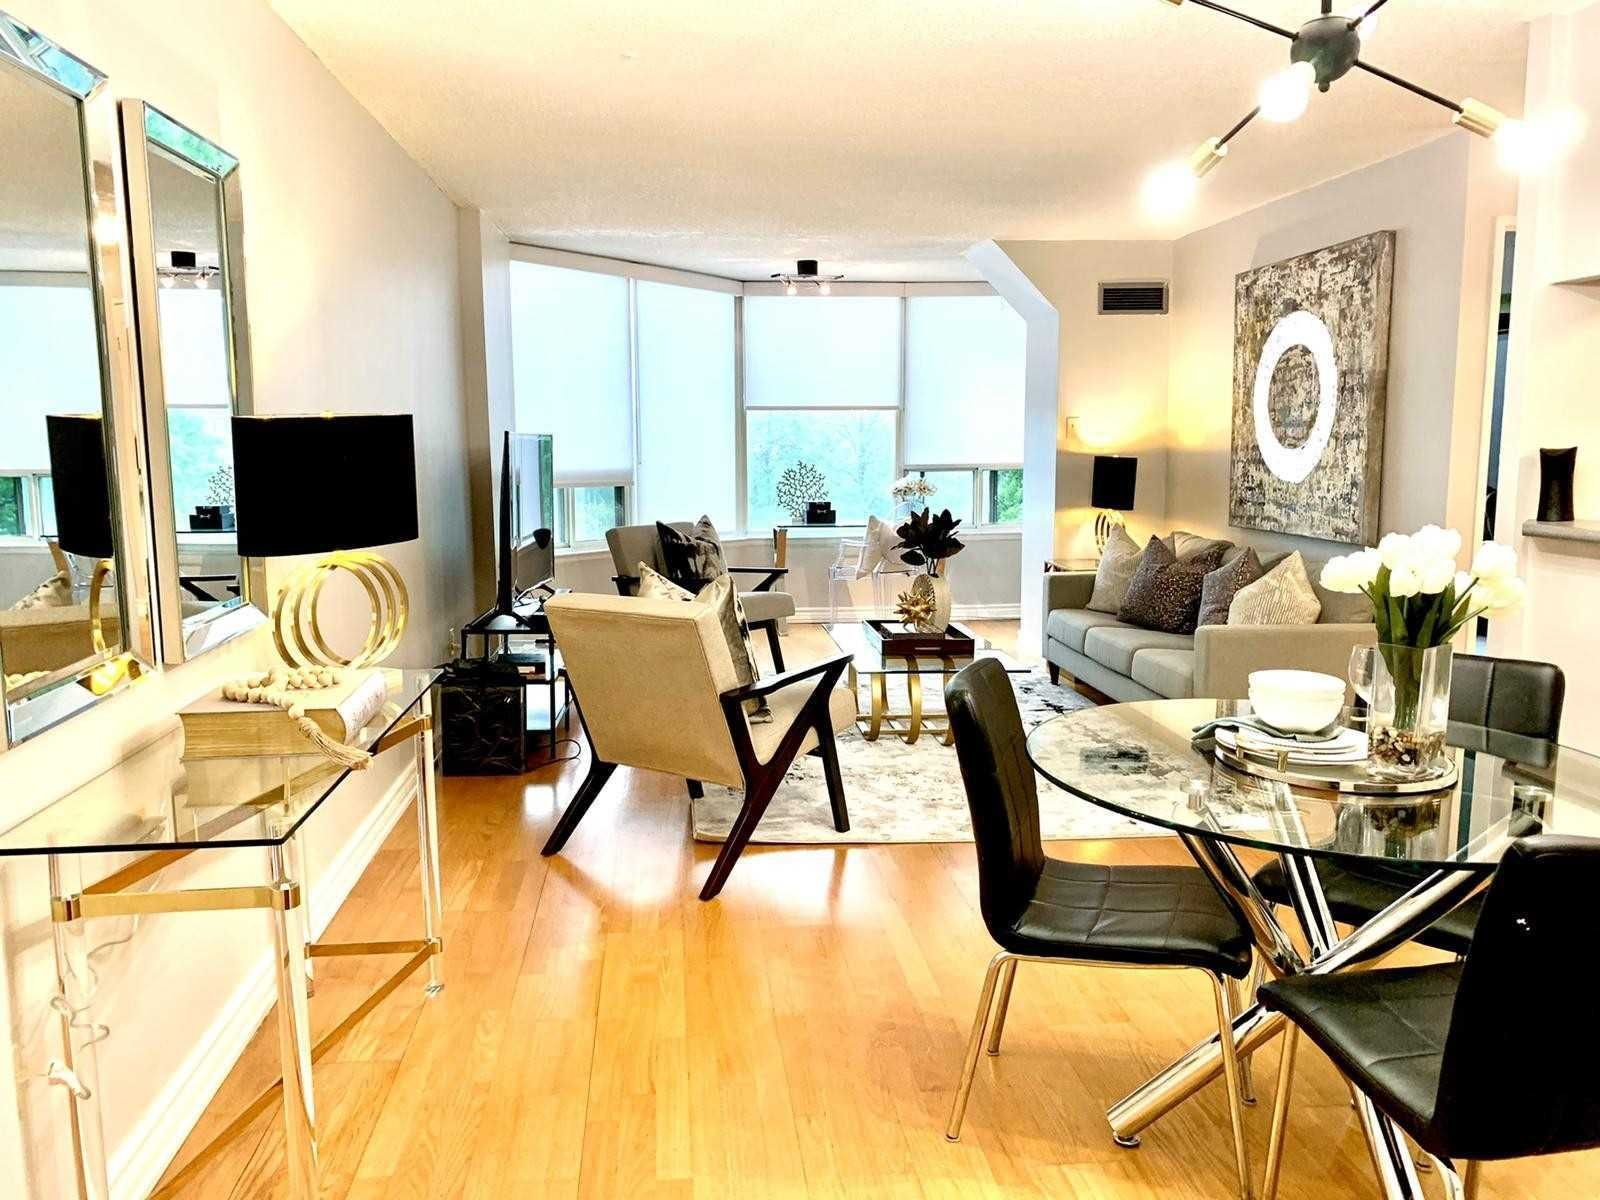 330 Rathburn Rd W, unit 401 for sale in Toronto - image #2